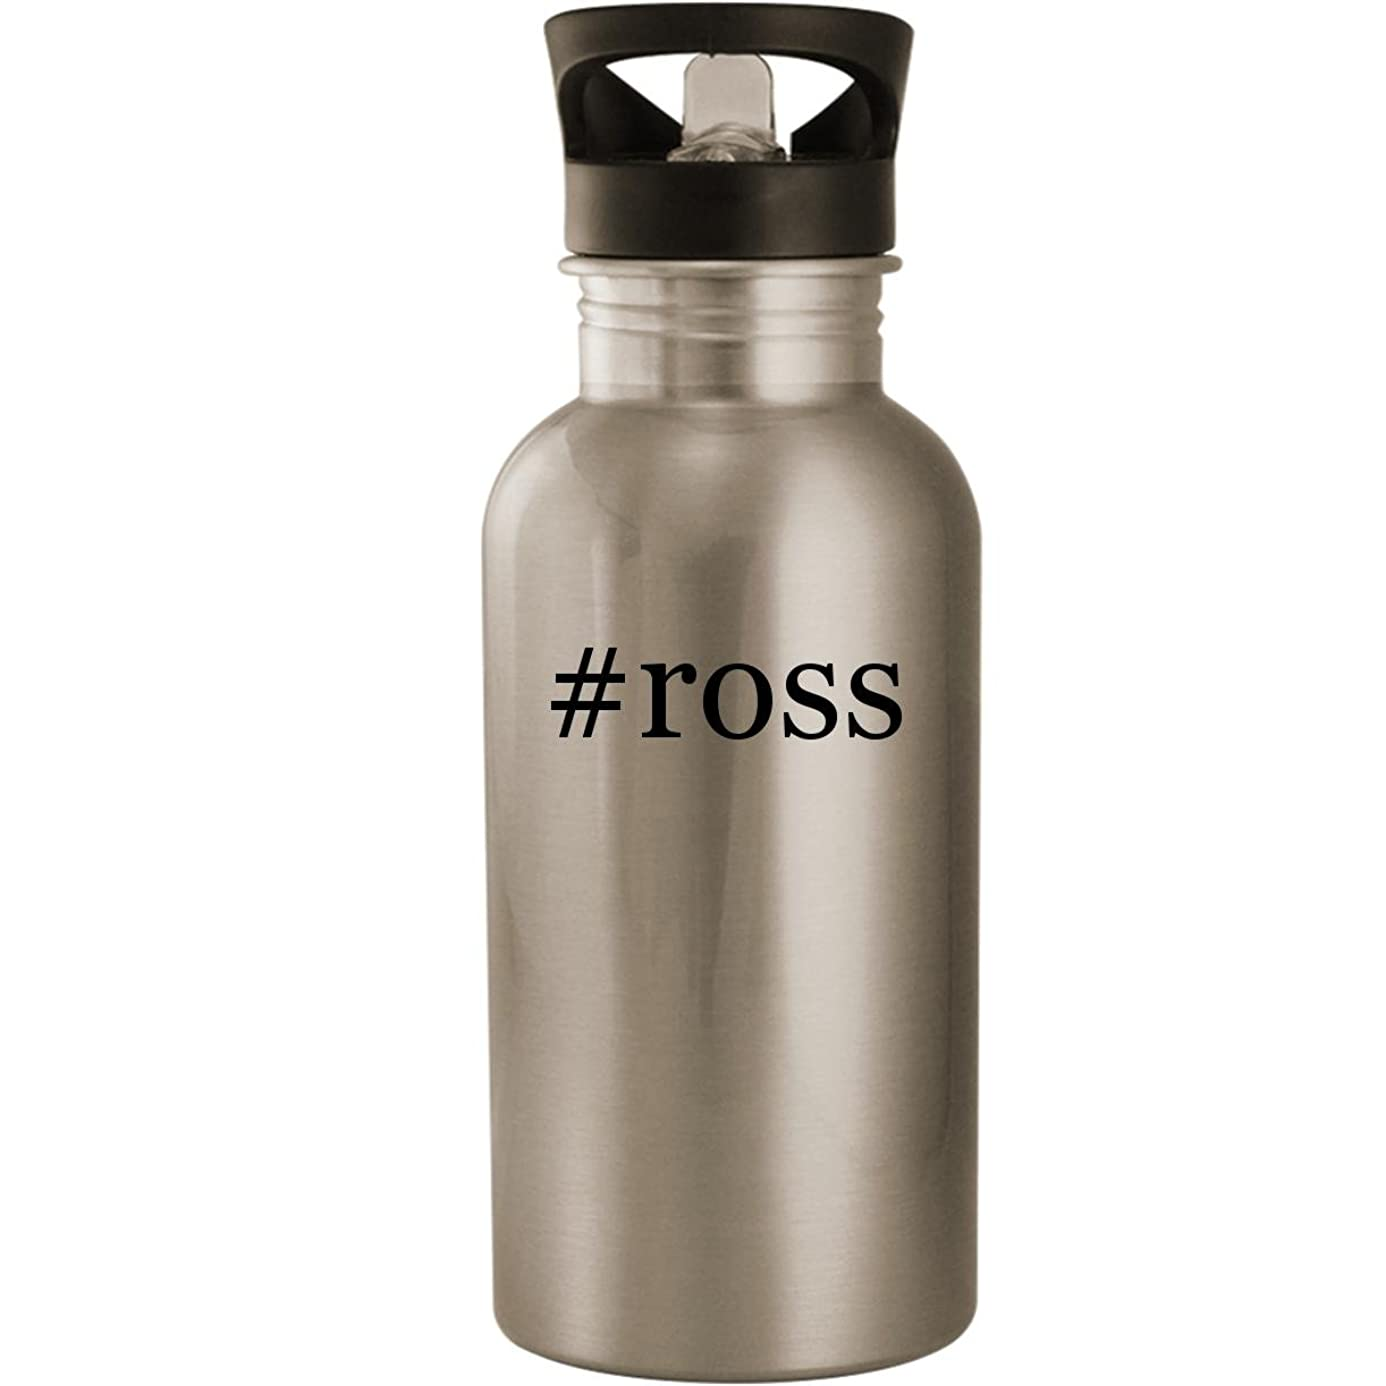 #ross - Stainless Steel Hashtag 20oz Road Ready Water Bottle, Silver